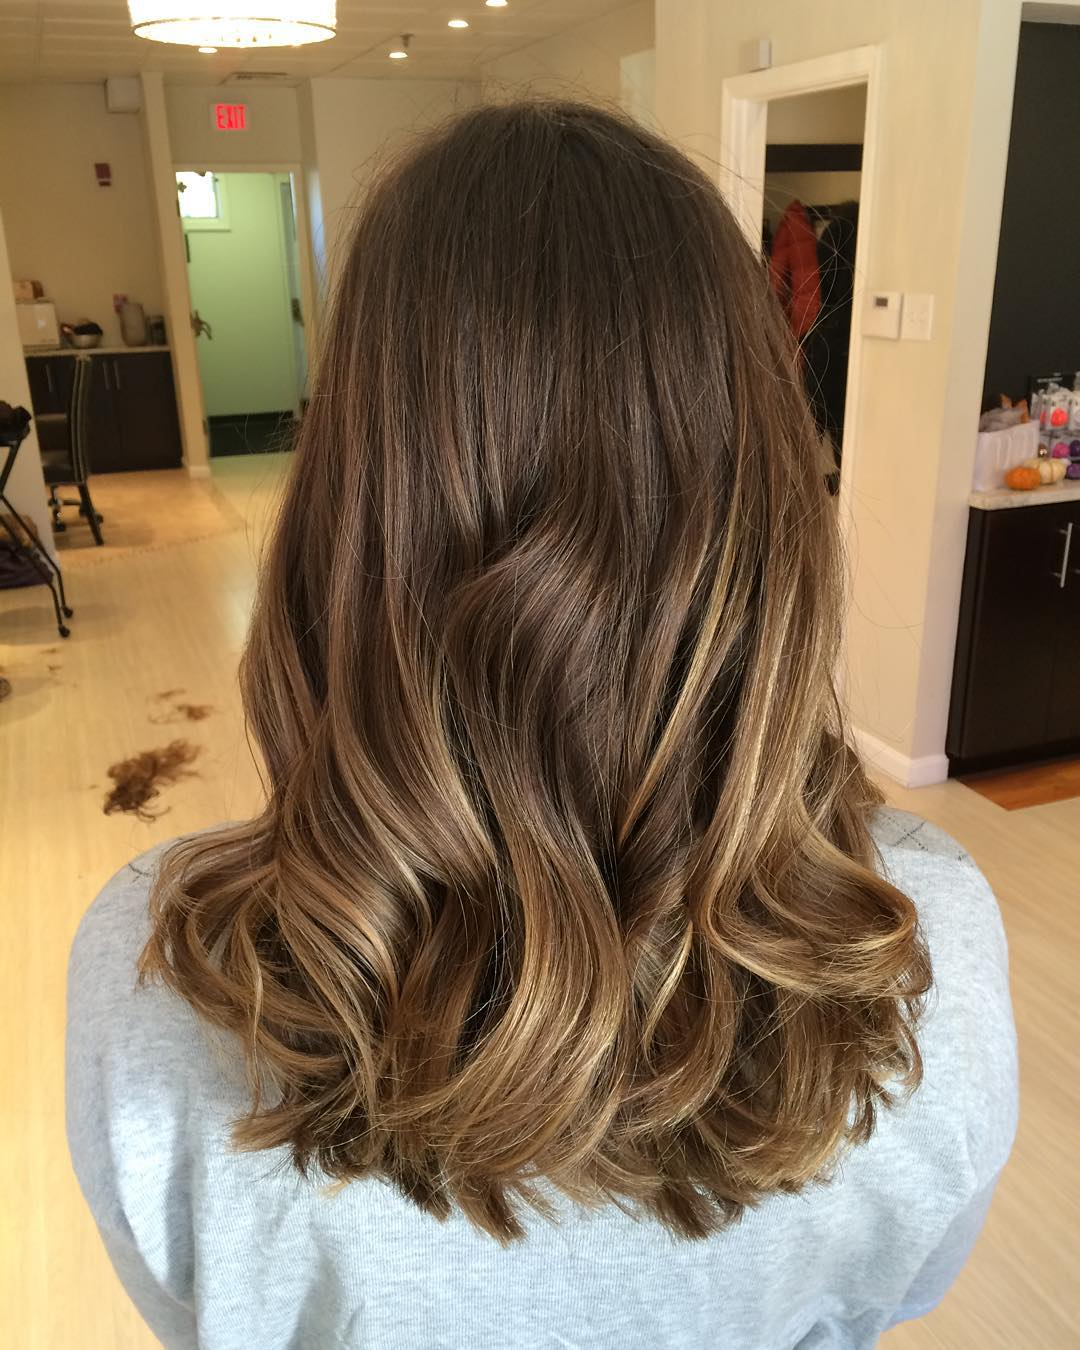 60 balayage hair color ideas with blonde brown caramel and red highlights page 44 foliver blog. Black Bedroom Furniture Sets. Home Design Ideas